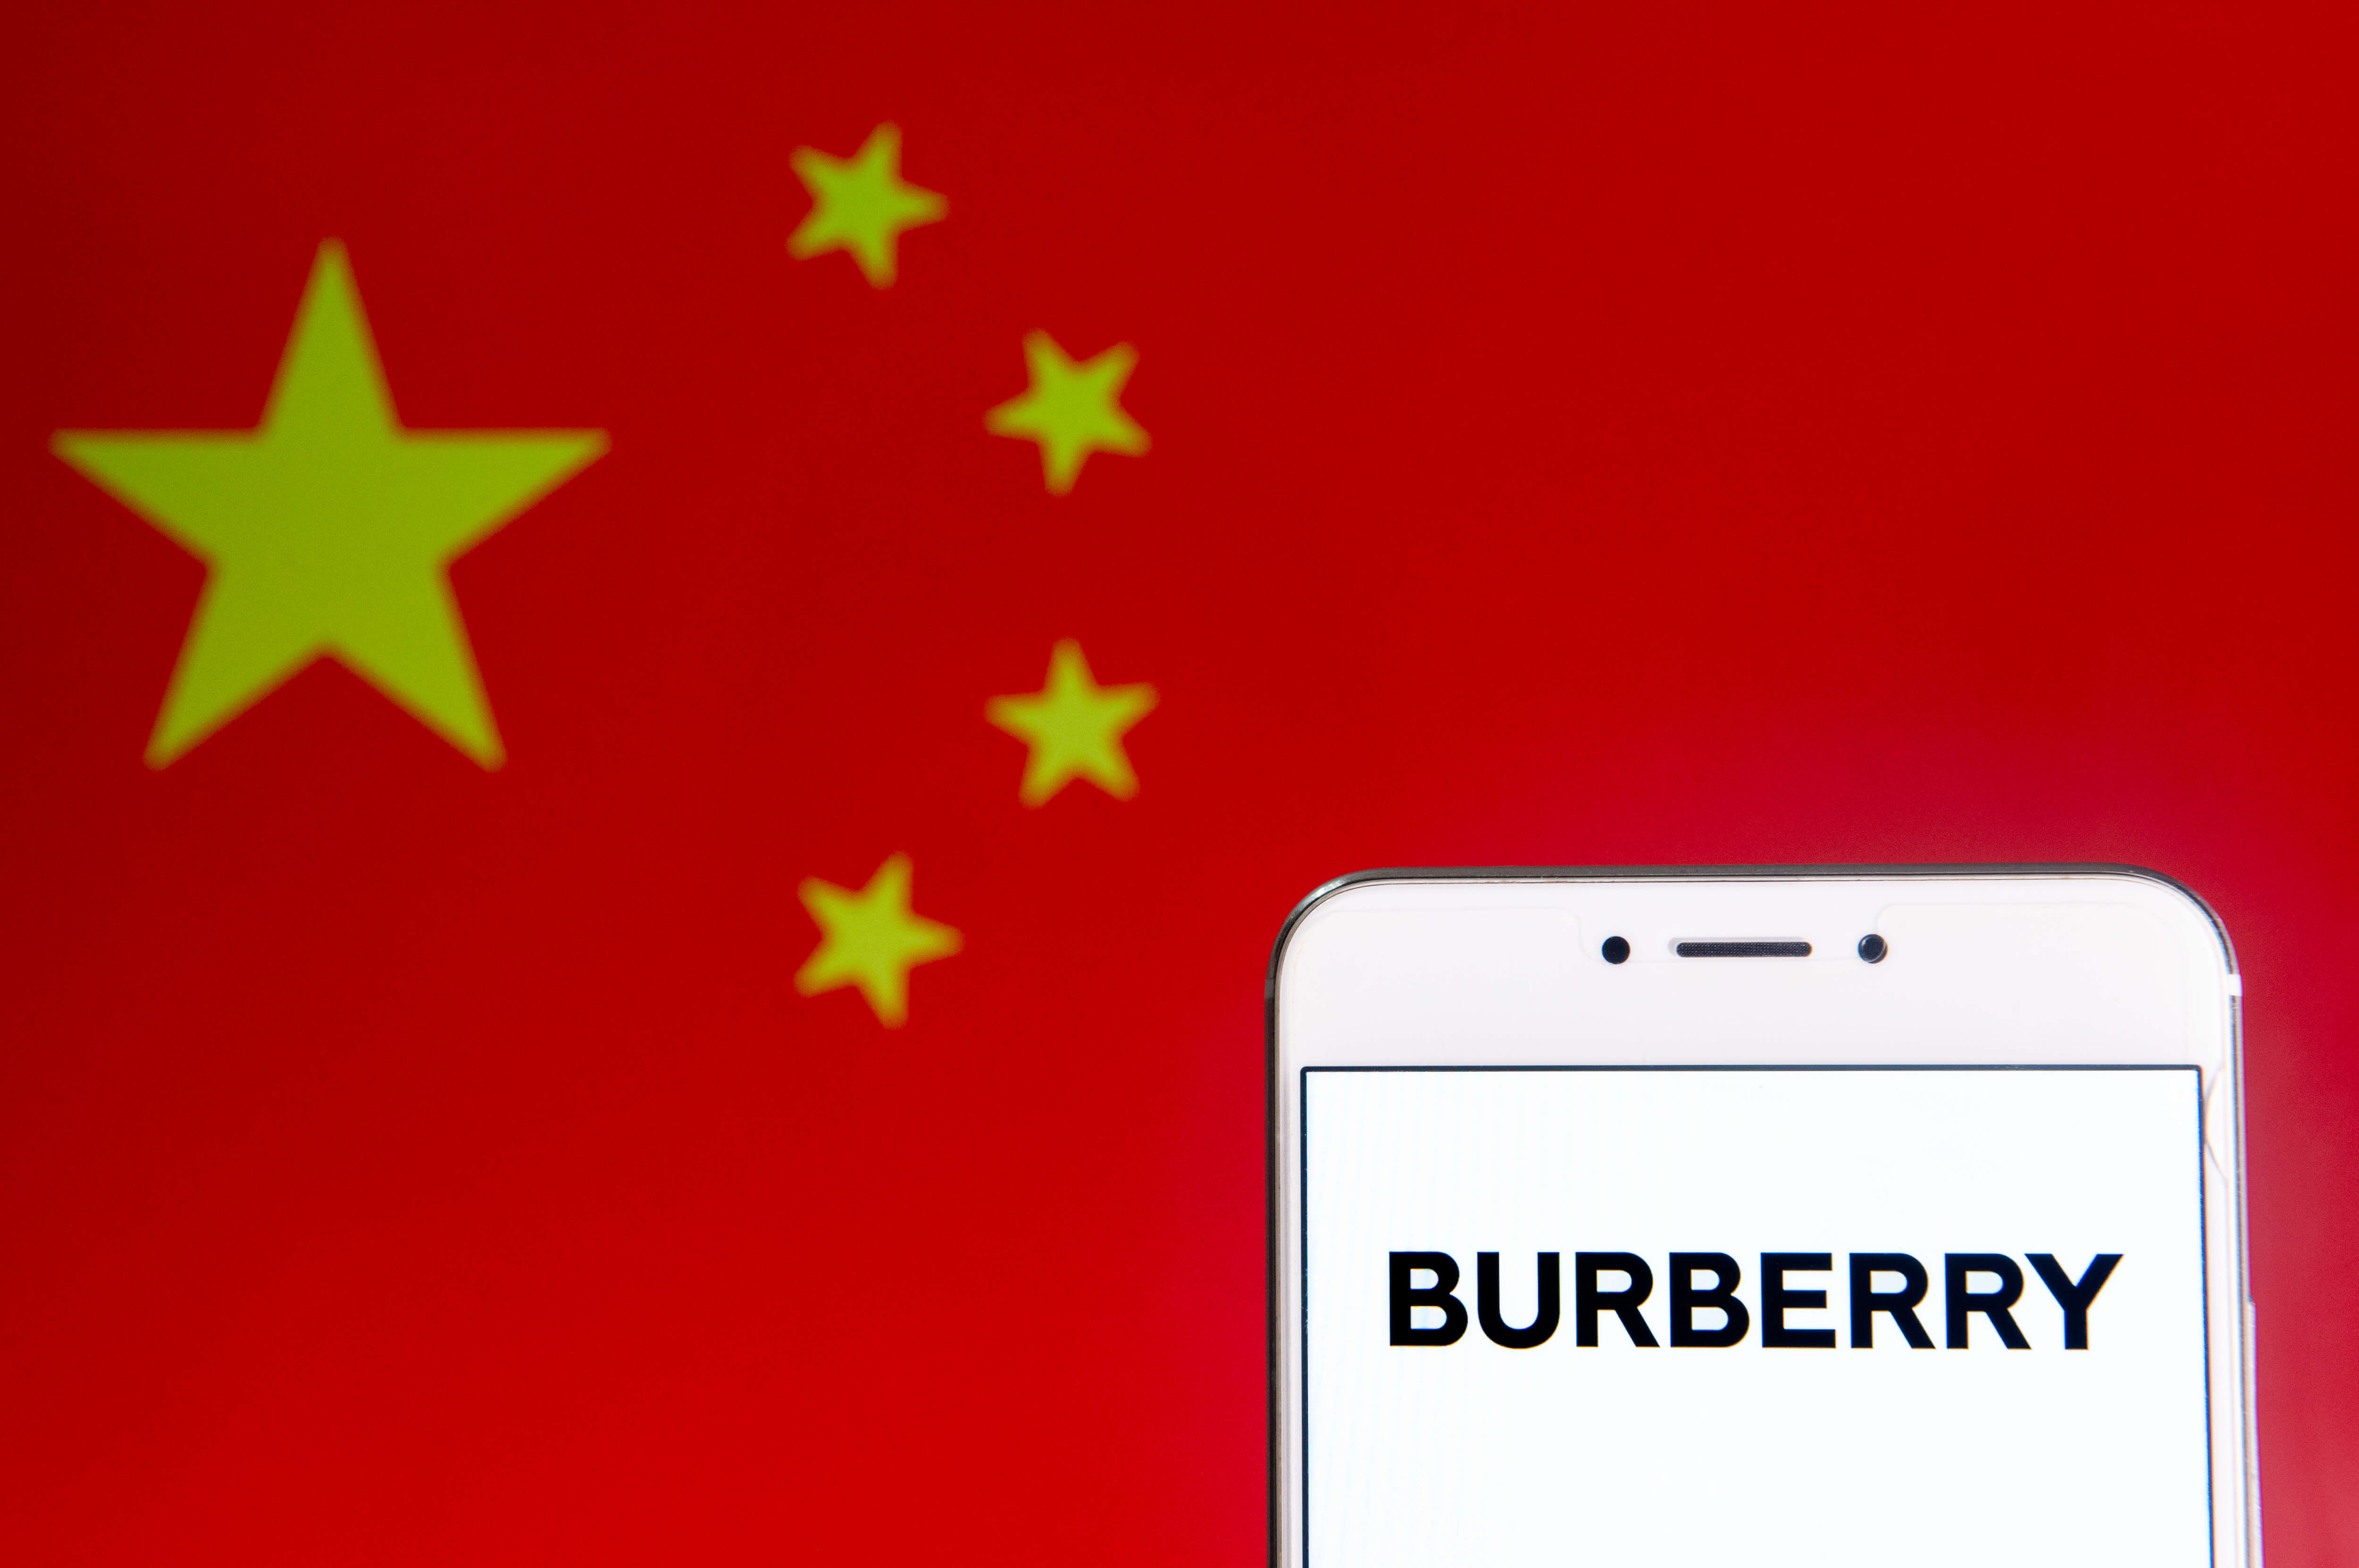 Can Tencent help Burberry reach WeChat's 1 billion+ users? Getty Images/ SOPA Images